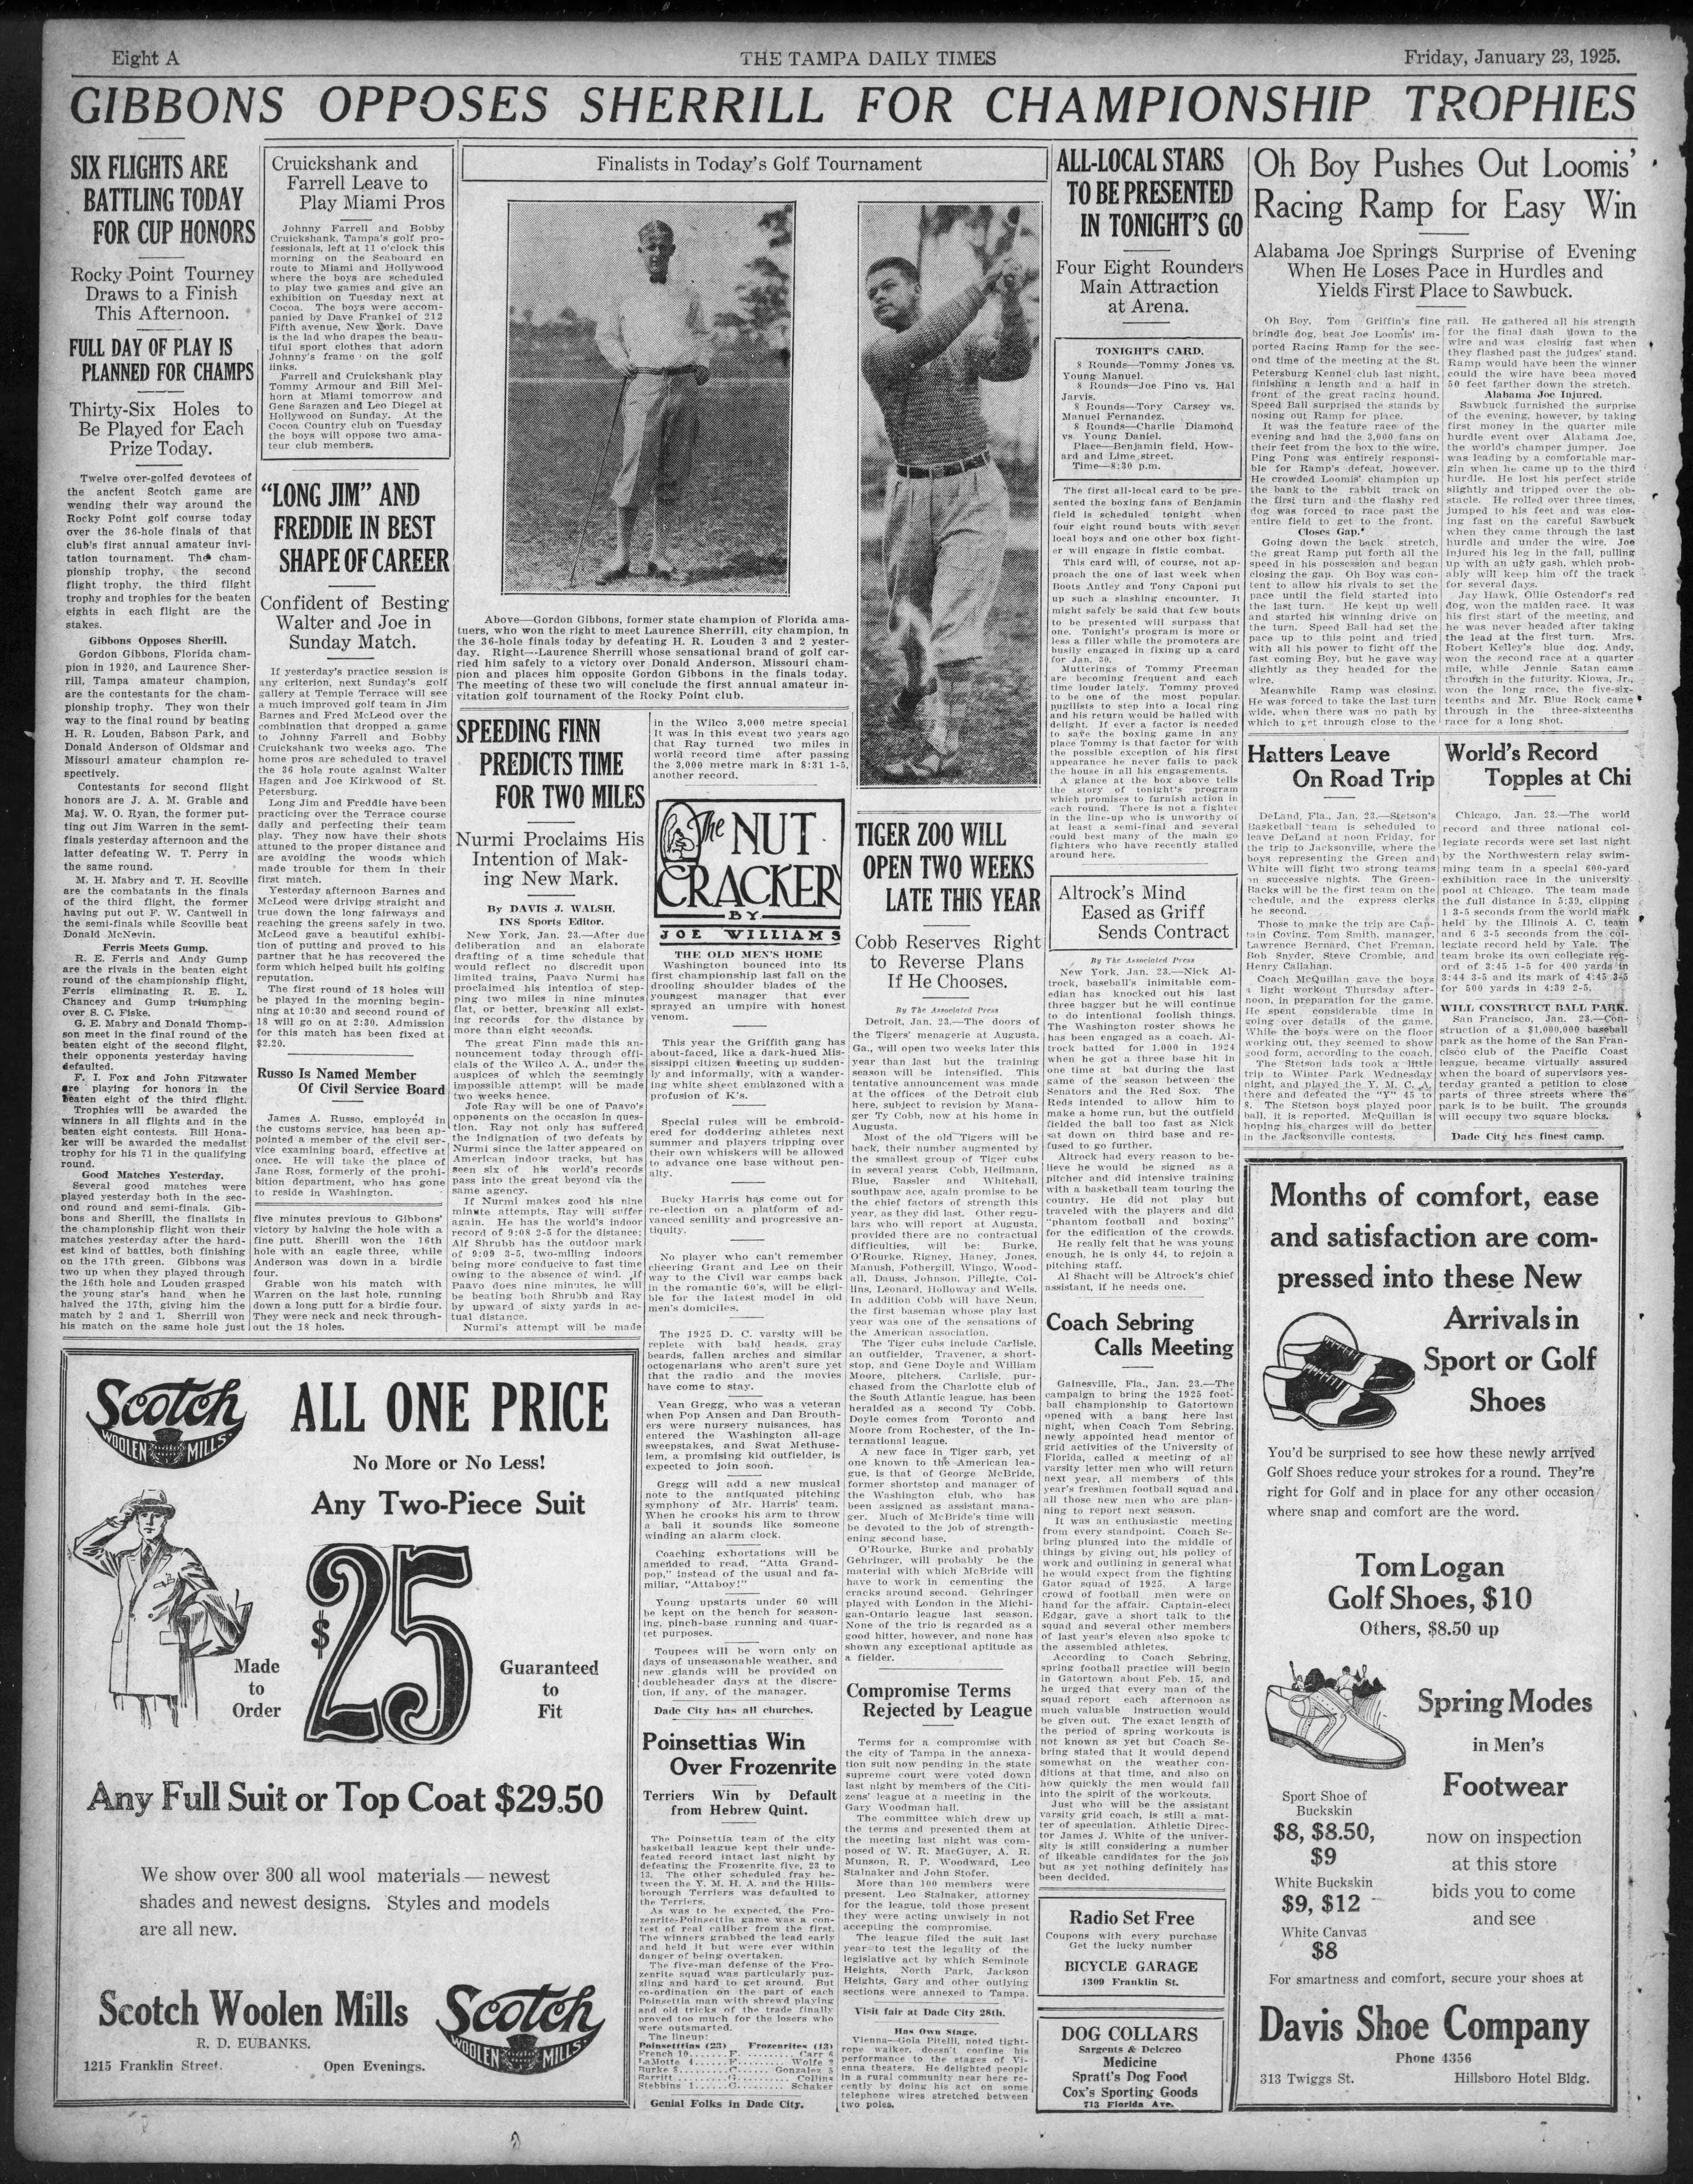 Rocky Point Tourney down to a finish this afternoon - Jan 23, 1925 Tampa Times